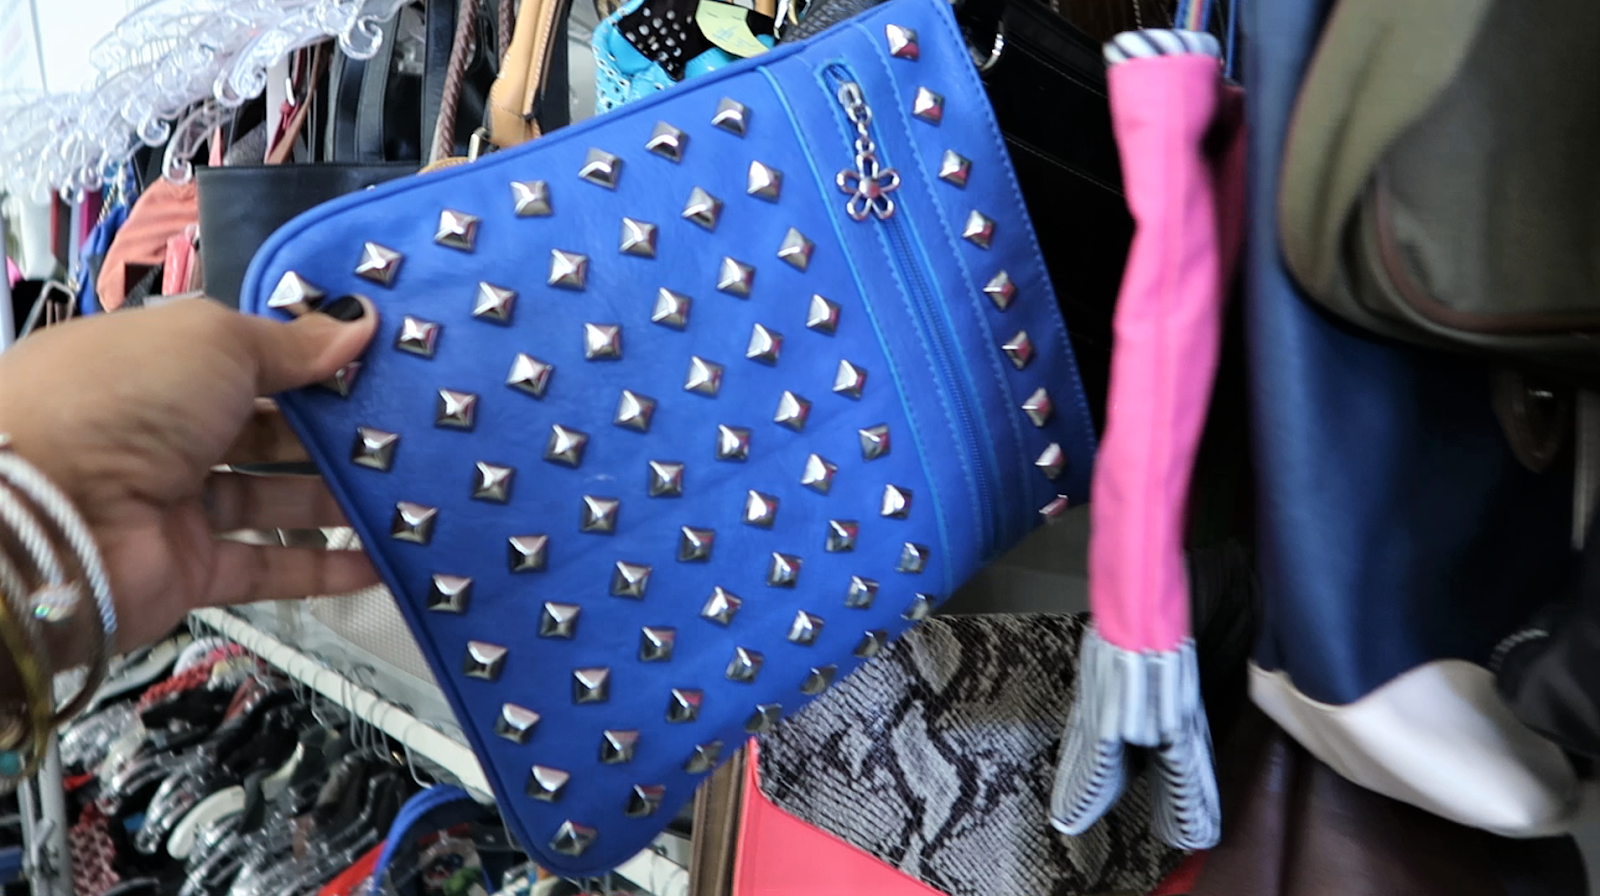 "Bought a blue rhinestone purse from the thrift store. Who goes to the thrift store and not rummage through the handbags? Not me says the best thrift snooper in the world. lolol"")  My luck changed right before I walked out the door with nothing in my hands. For only $3.99, I grabbed the cutest little blue rhinestone clutch bag I've ever seen."